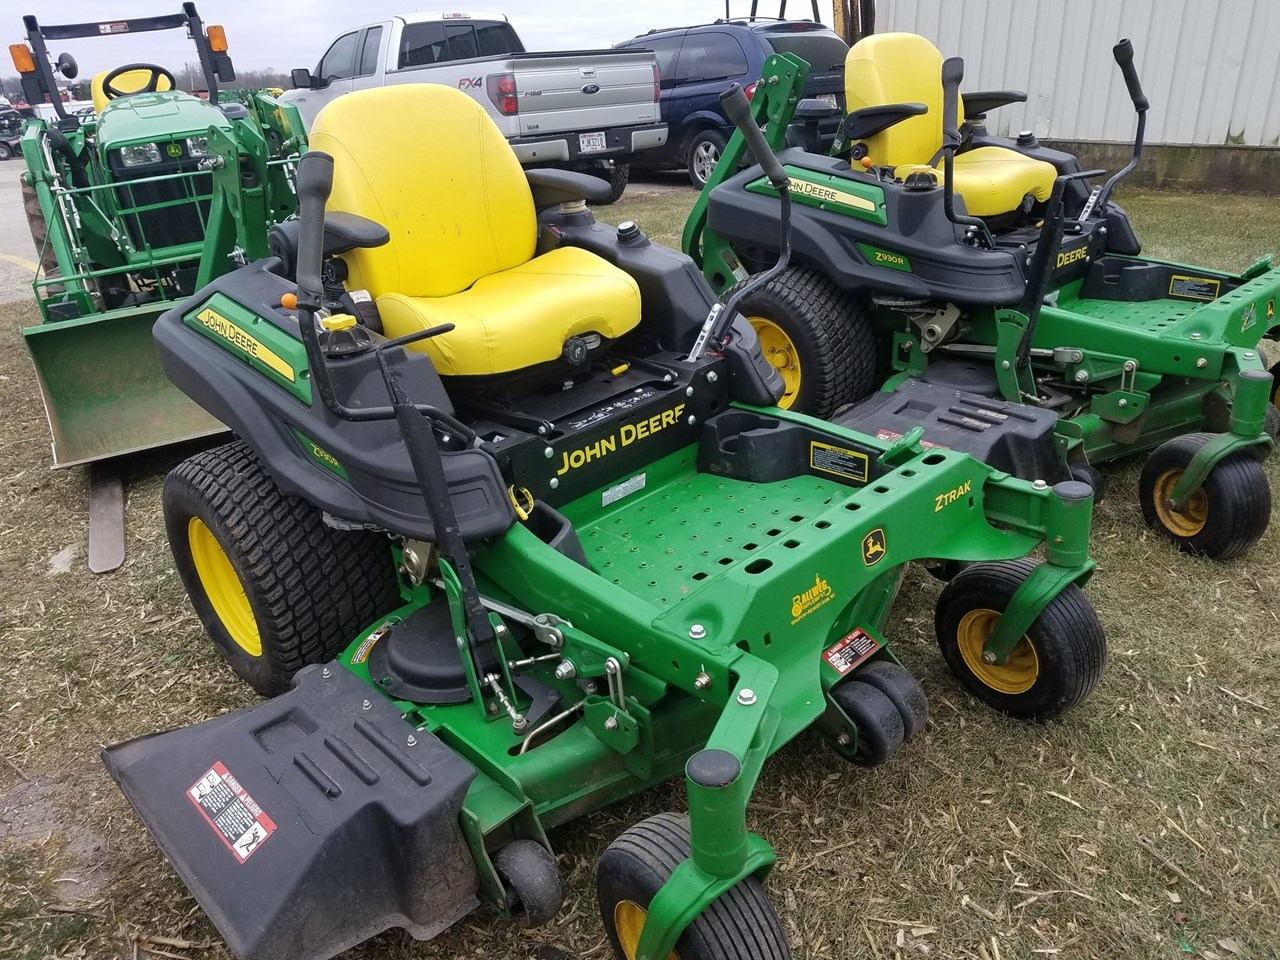 2016 John Deere Z930R Zero Turn Mower For Sale